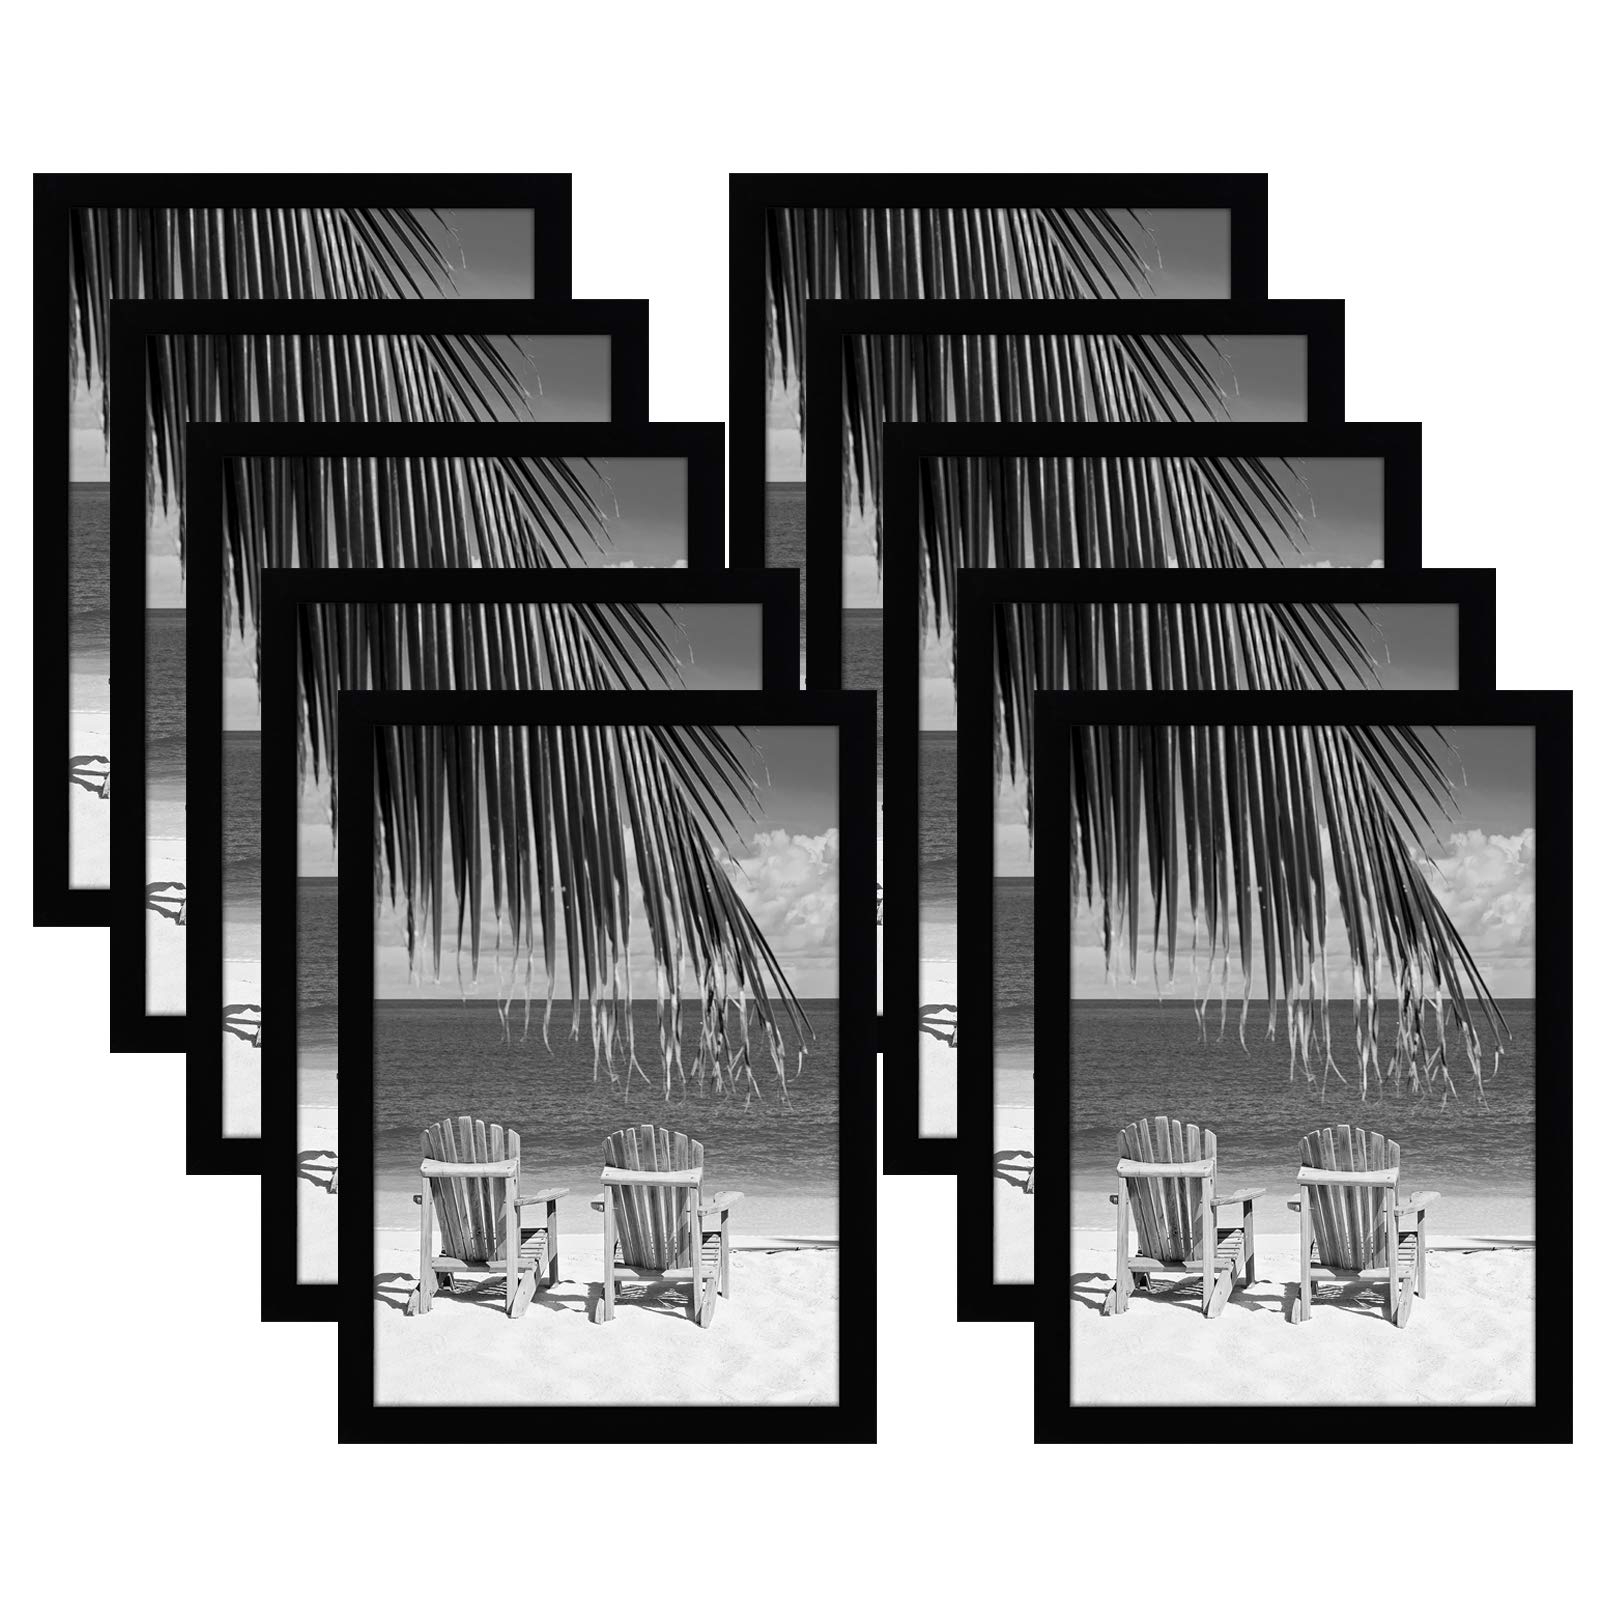 Americanflat 10 Pack - 13x19 Black Picture Frames - Shatter-Resistant Glass - Hanging Hardware Included